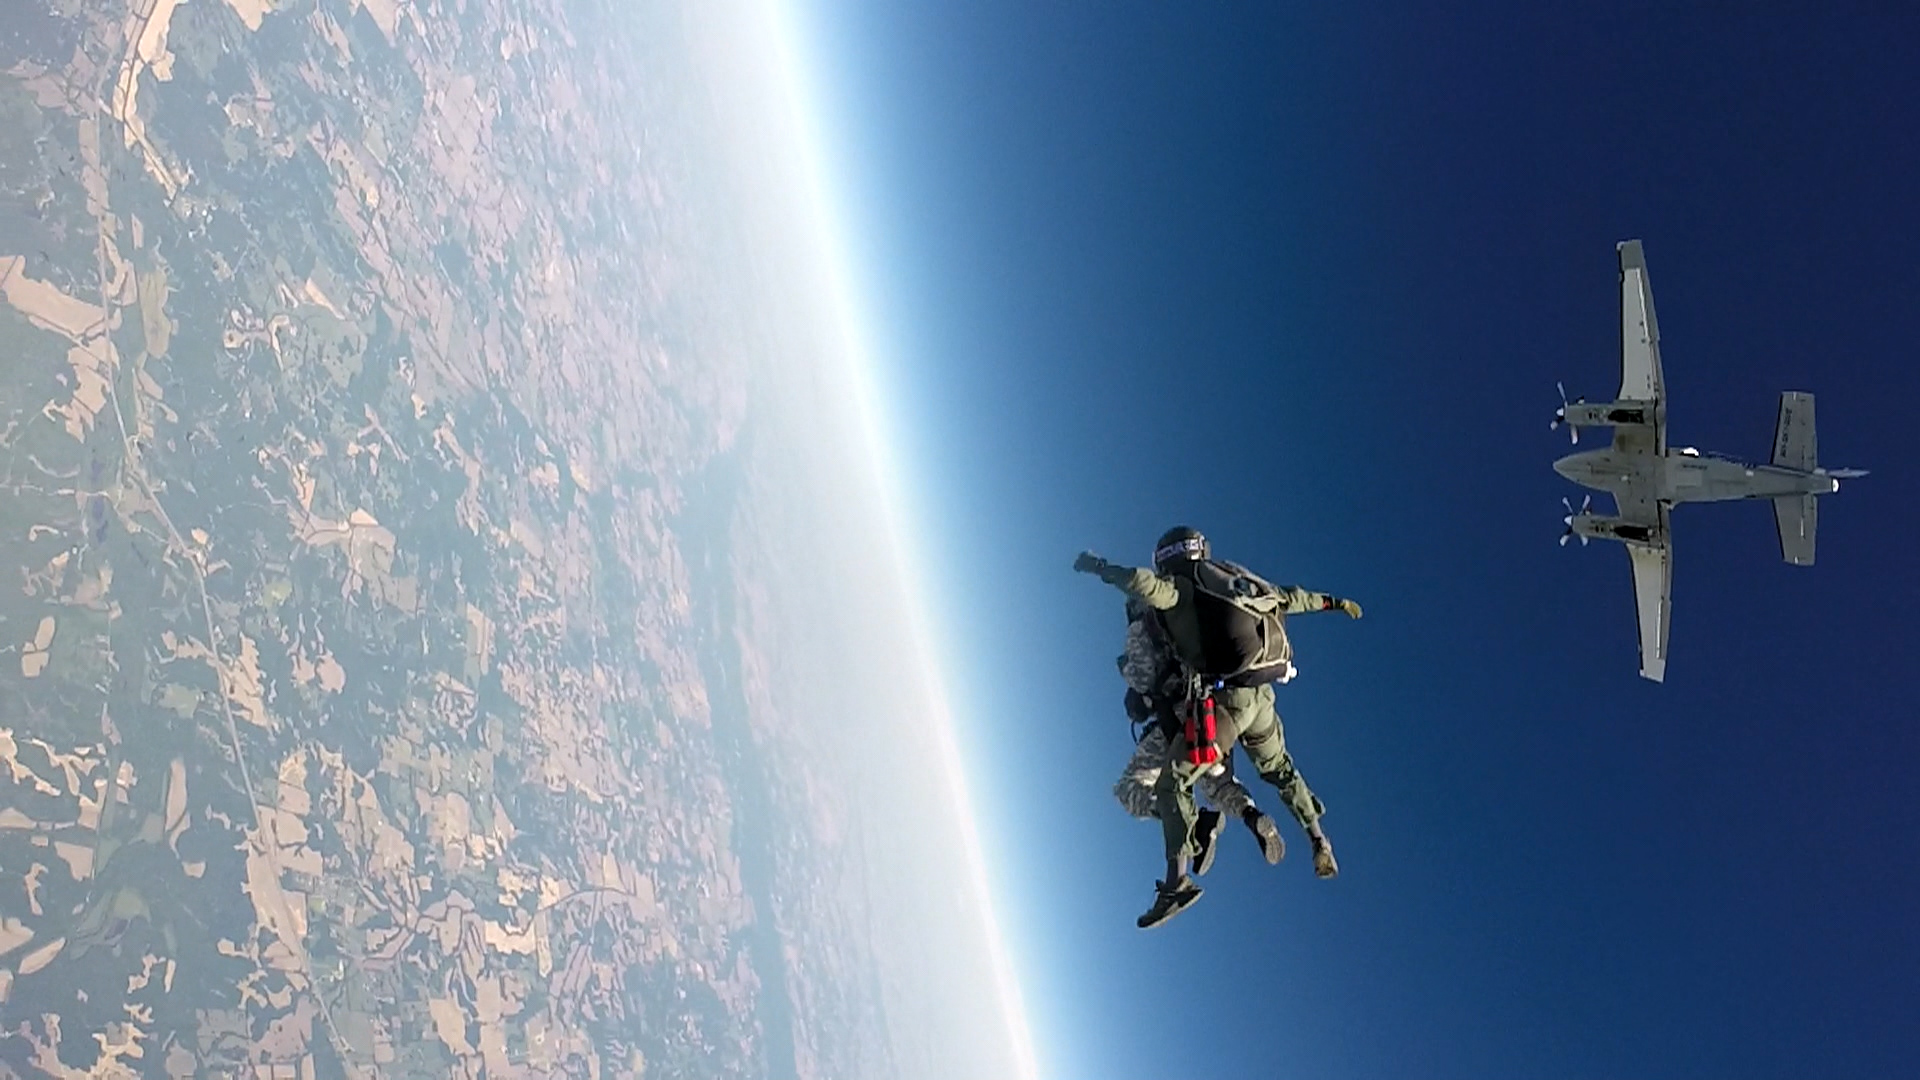 HALO Jumps – Skydive High